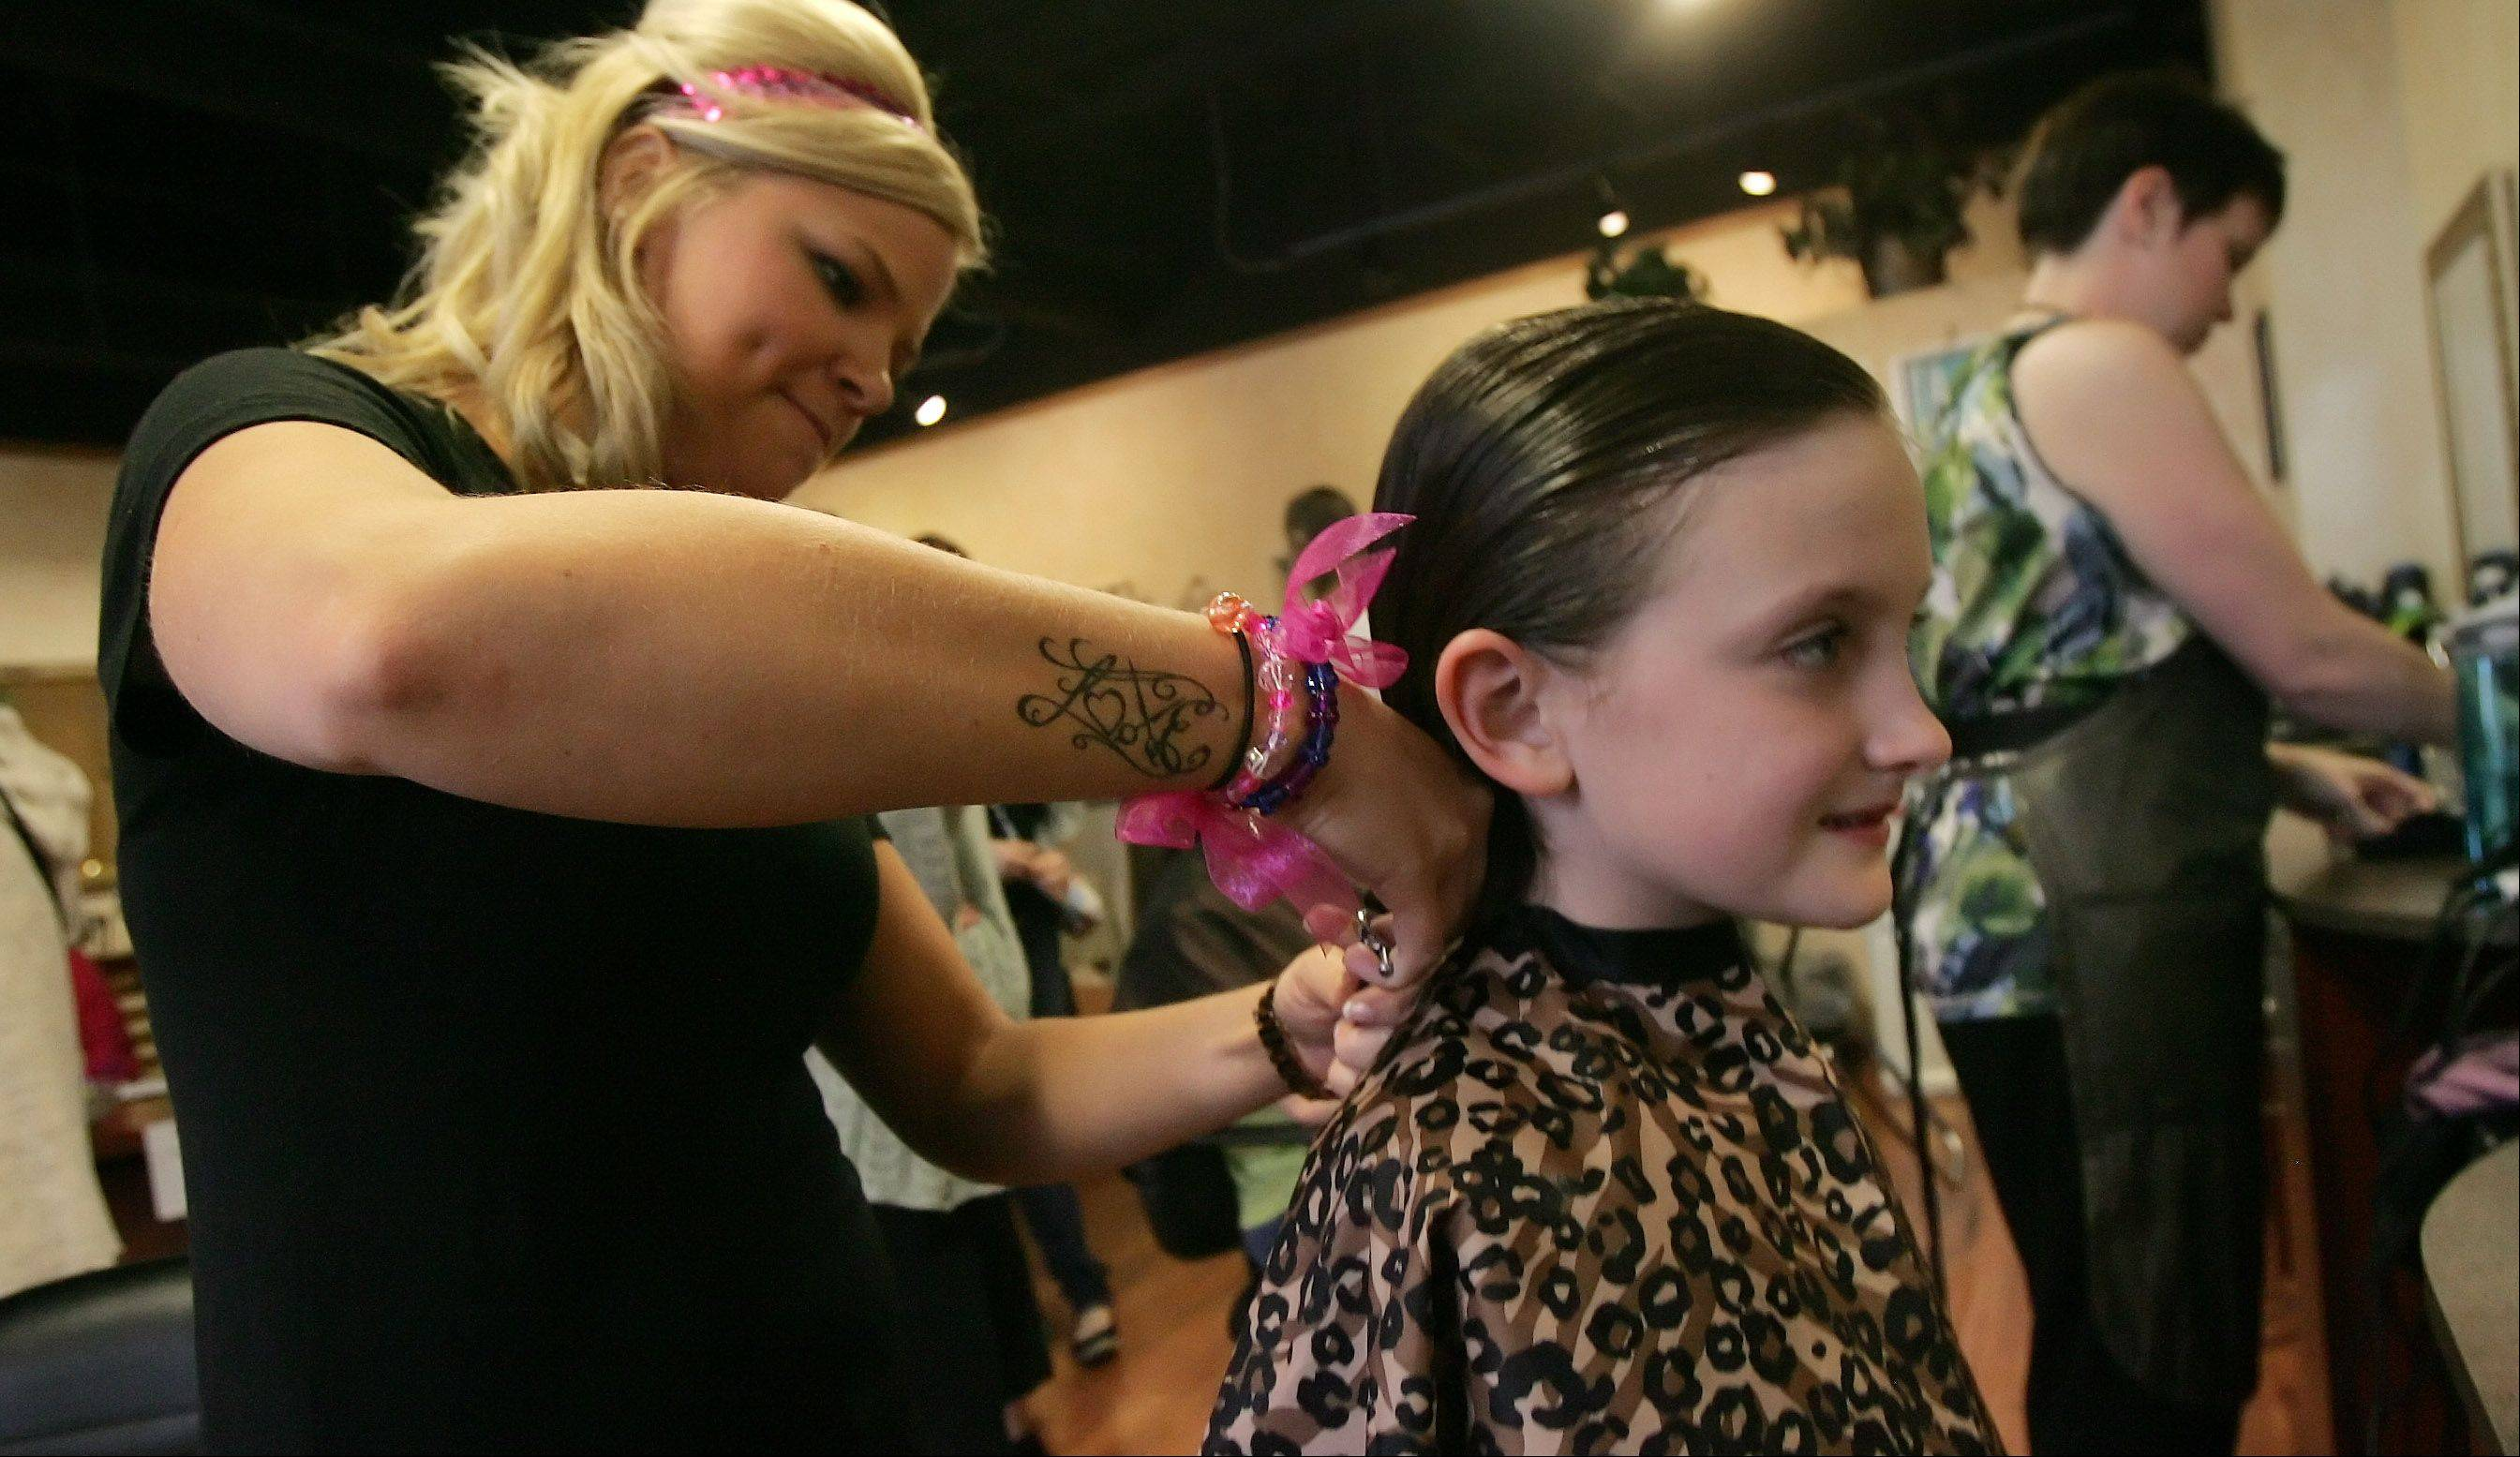 Hannah Connolly, 8, of Mount Prospect, has more than 10 inches of her hair cut off by stylist Sara Mock to donate to Locks of Love during Haircuts For Hope Sunday at Halo Hair & Nails in Mount Prospect. The event was to benefit Lions Park Elementary School teacher Linda Frahm, who is battling cancer. Frahm was Connolly's teacher before she went on leave.